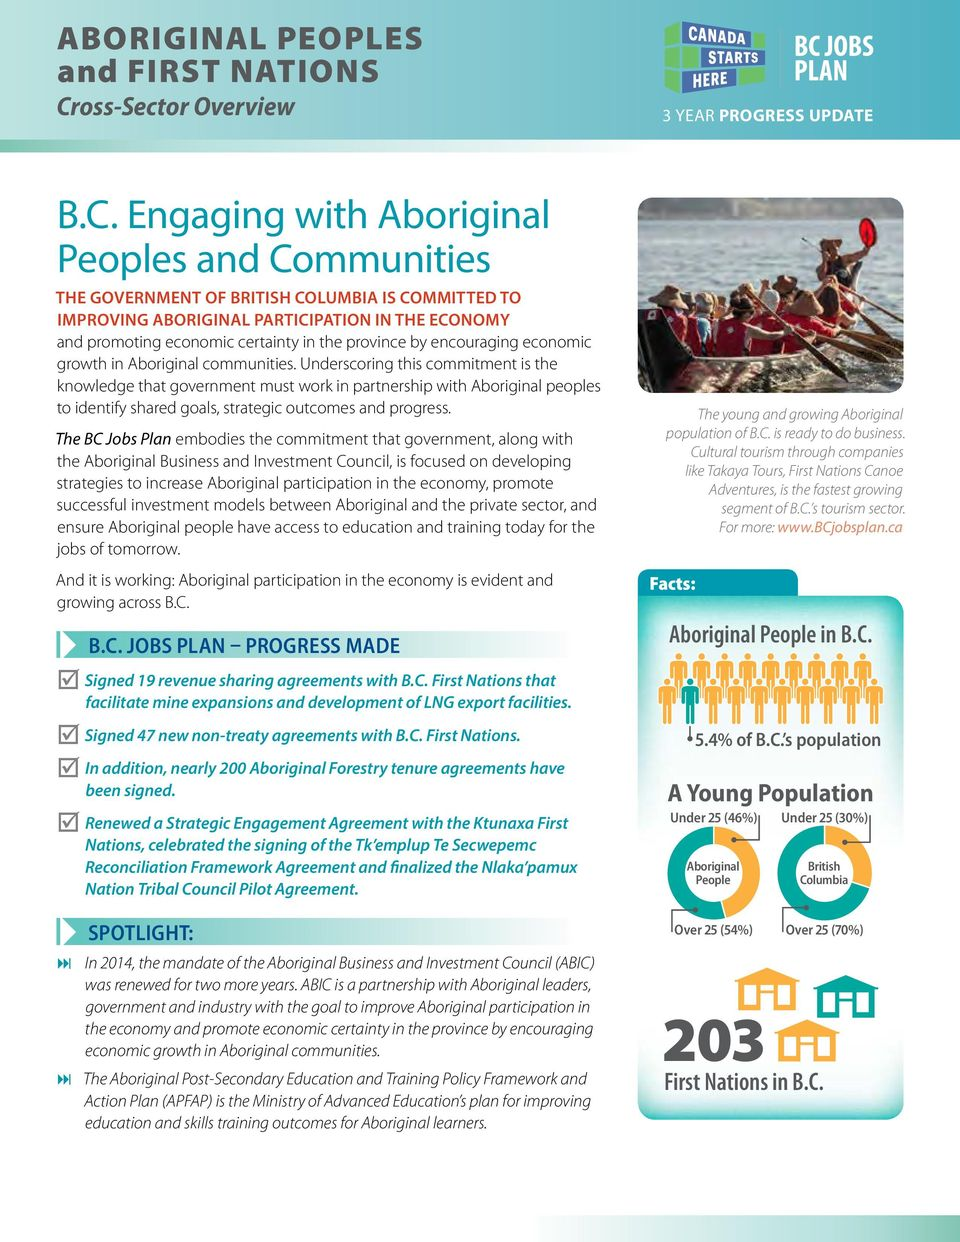 Engaging with Aboriginal Peoples and Communities THE GOVERNMENT OF BRITISH COLUMBIA IS COMMITTED TO IMPROVING ABORIGINAL PARTICIPATION IN THE ECONOMY and promoting economic certainty in the province